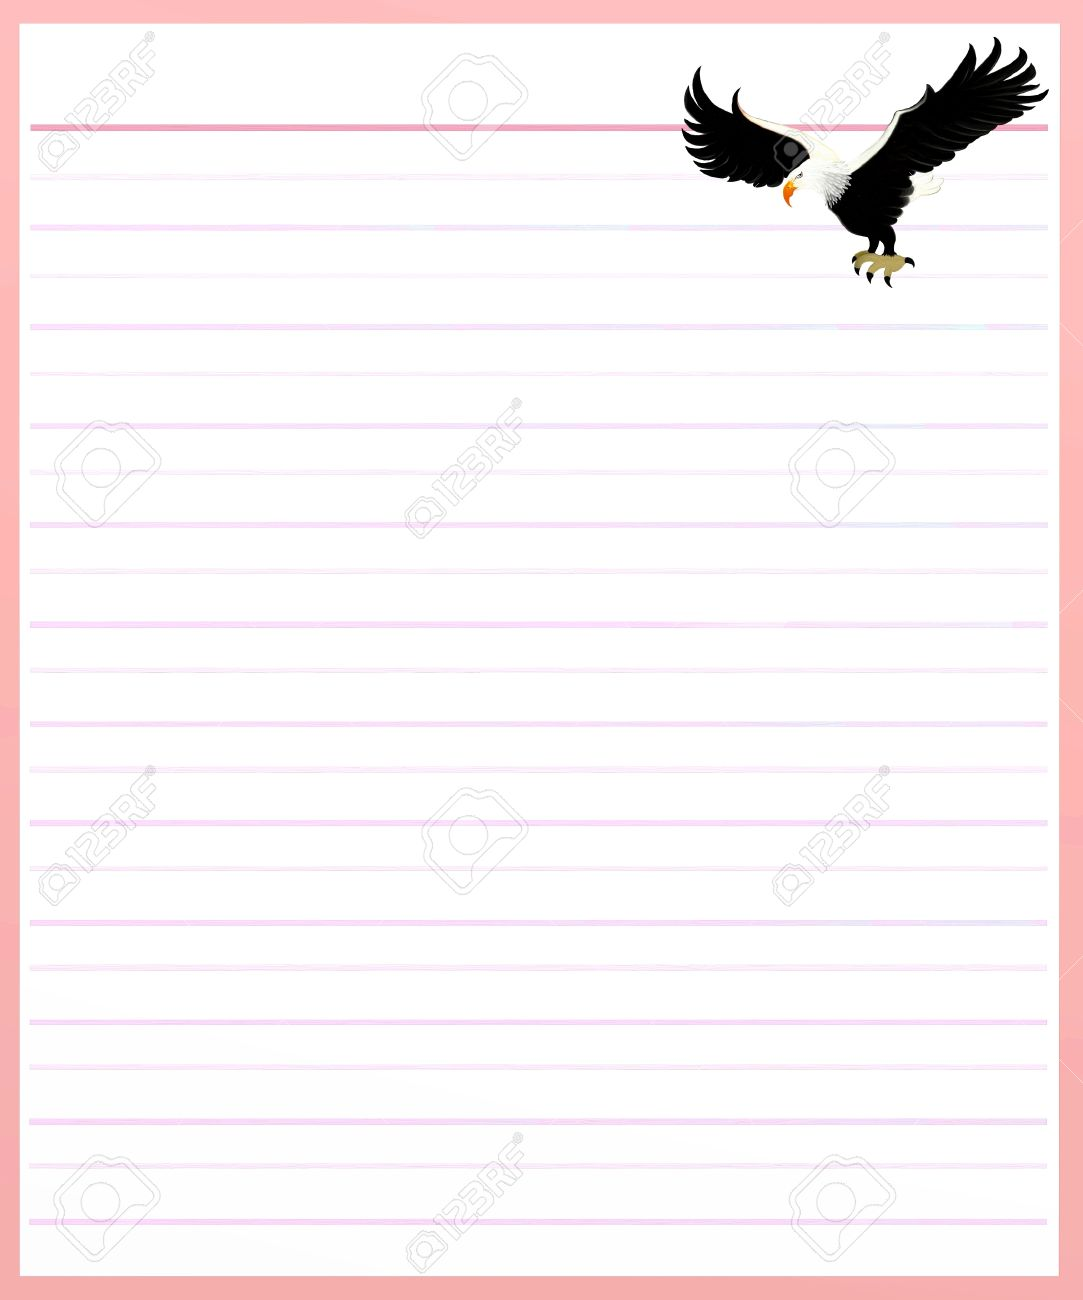 Hand Drawing Of Two Beautiful Eagle On A Blank Pink Lined Paper Background  With Copy Space  Lined Blank Paper